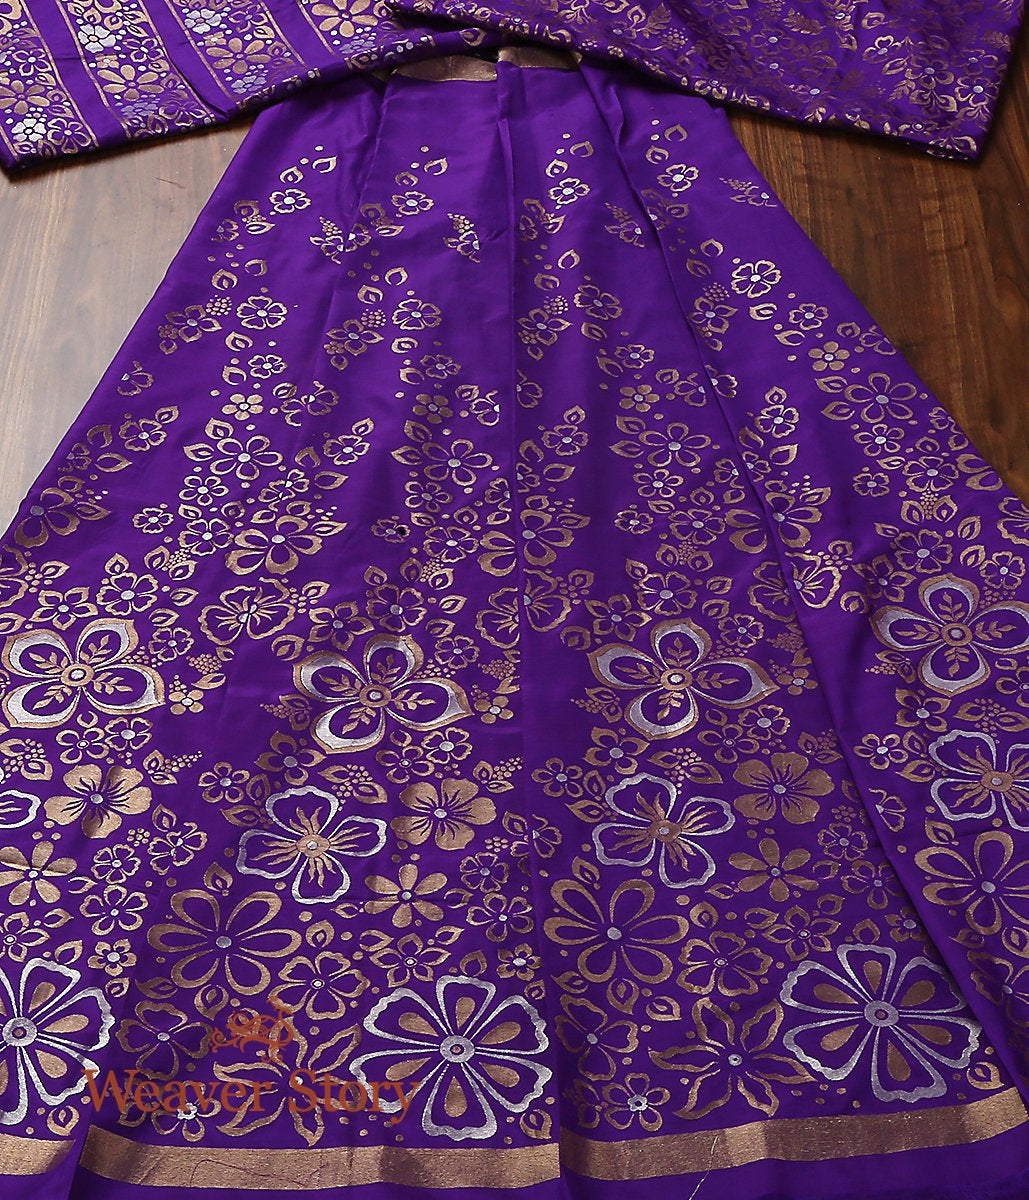 Handwoven Banarasi Silk Purple Lehenga with Sona Rupa Flowers